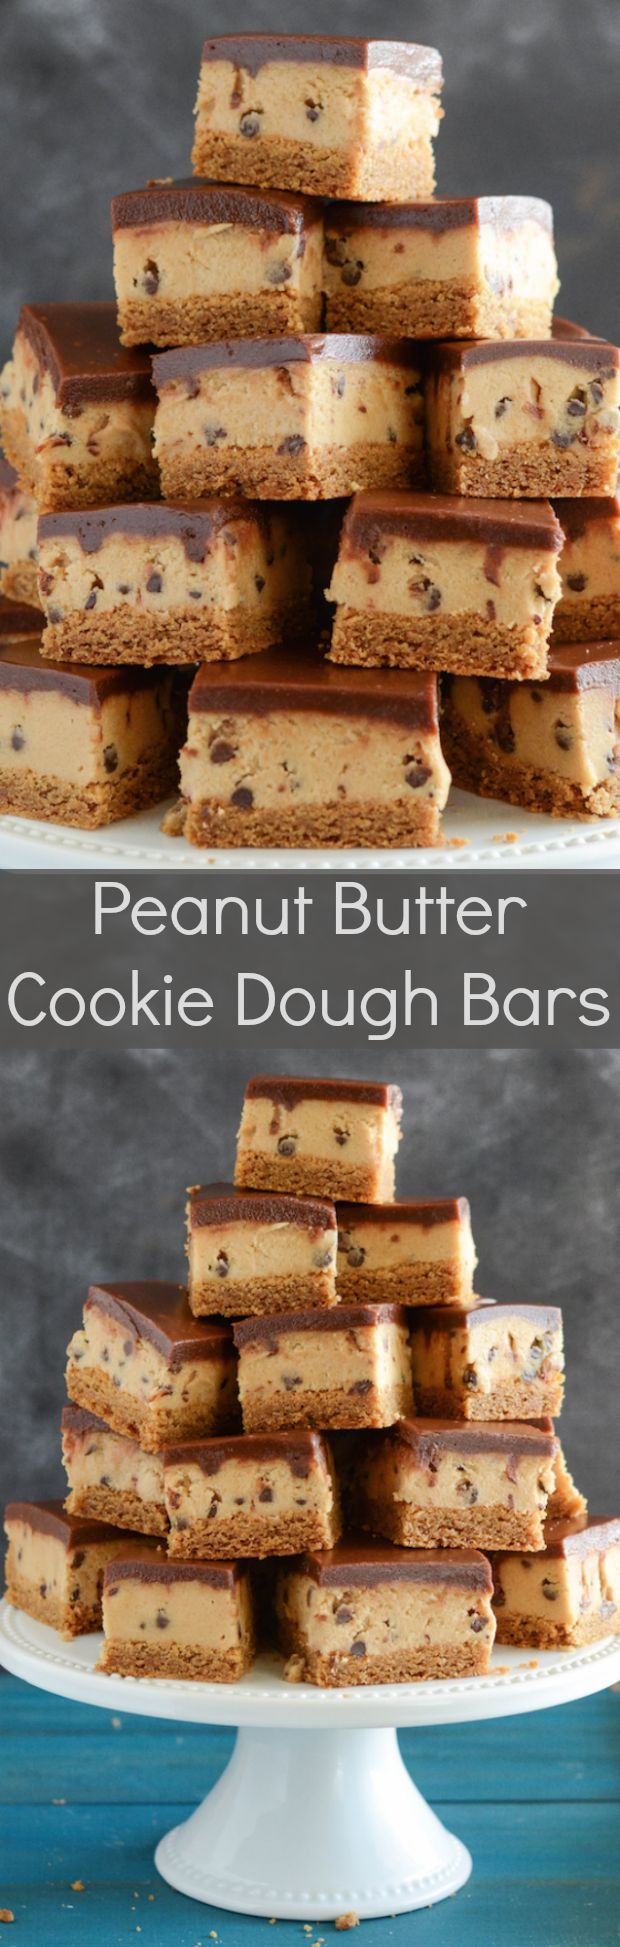 Peanut Butter Cookie Dough Bars - a layer of peanut butter cookie, then a thick layer of cookie dough and topped with chocolate ganache!